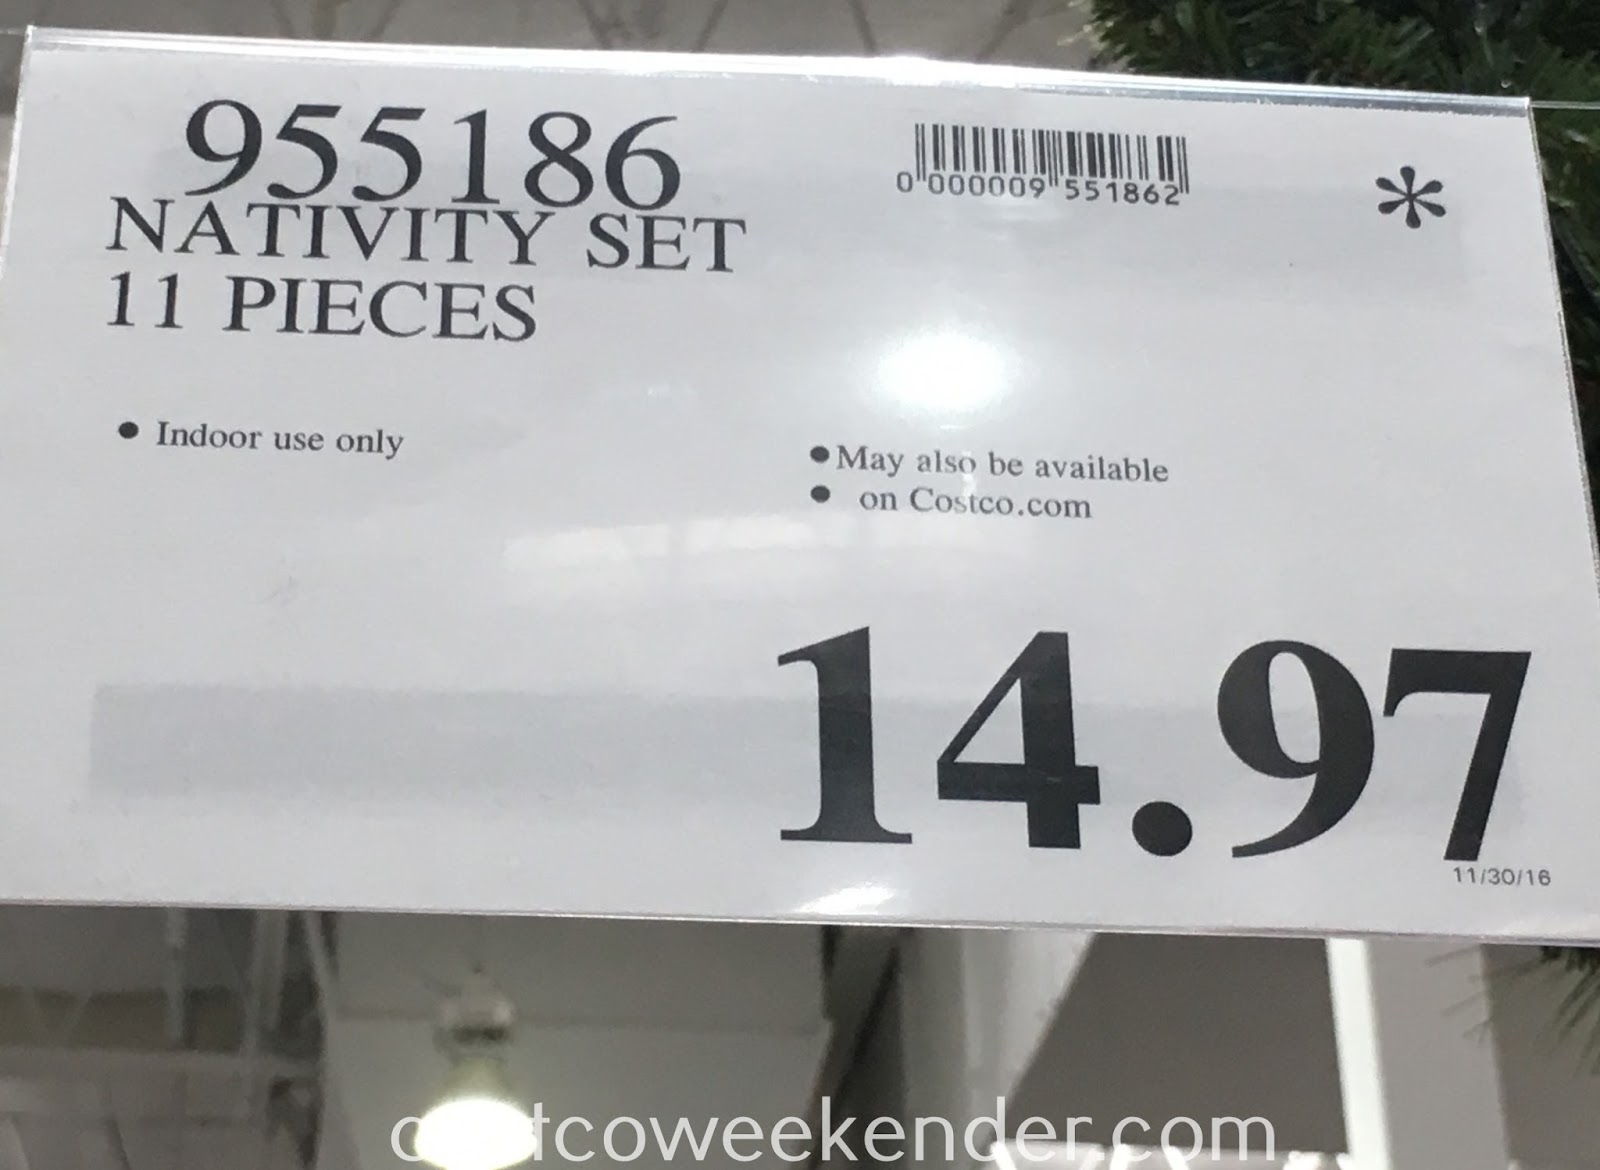 Deal for the 11 piece Nativity Set at Costco